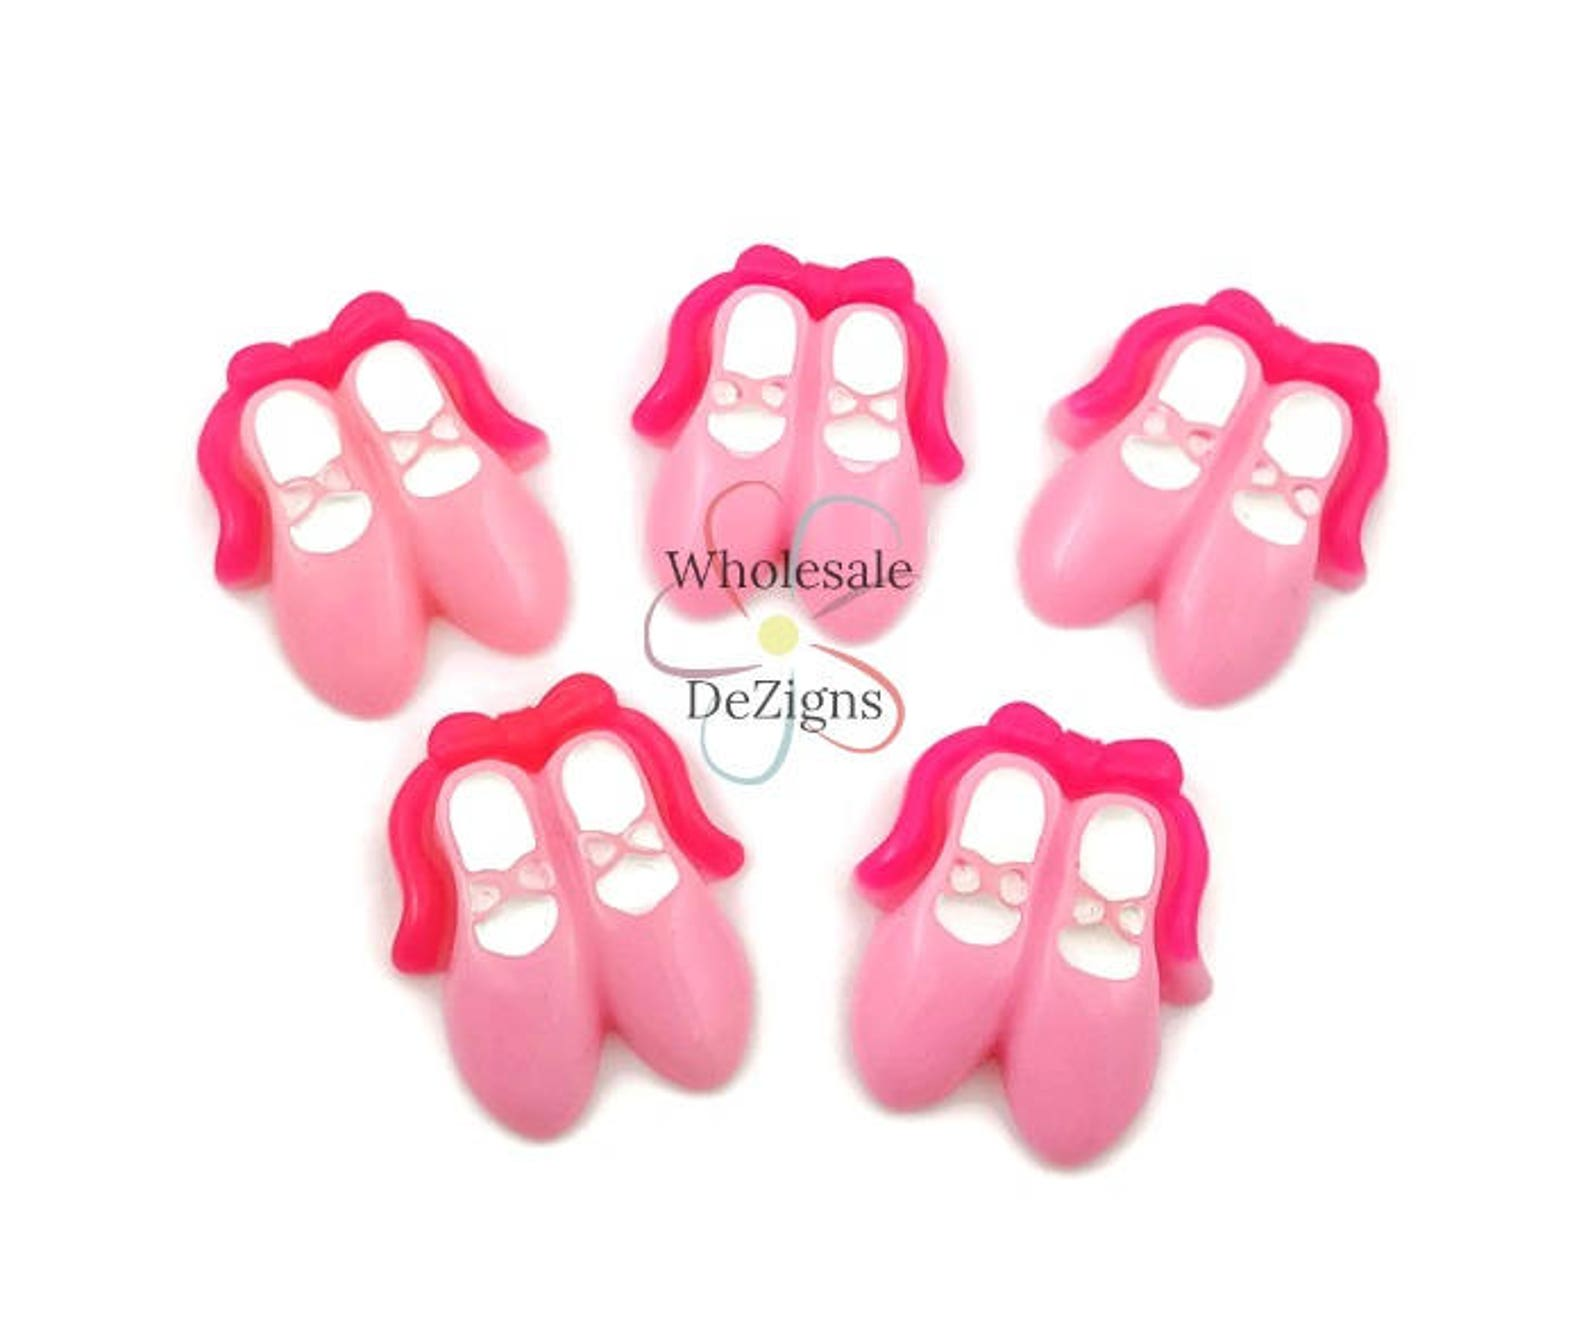 pink ballet slipper resins pink ballerina slippers cabochons light hot pink shoes flat back acrylic diy headband hair bow embell